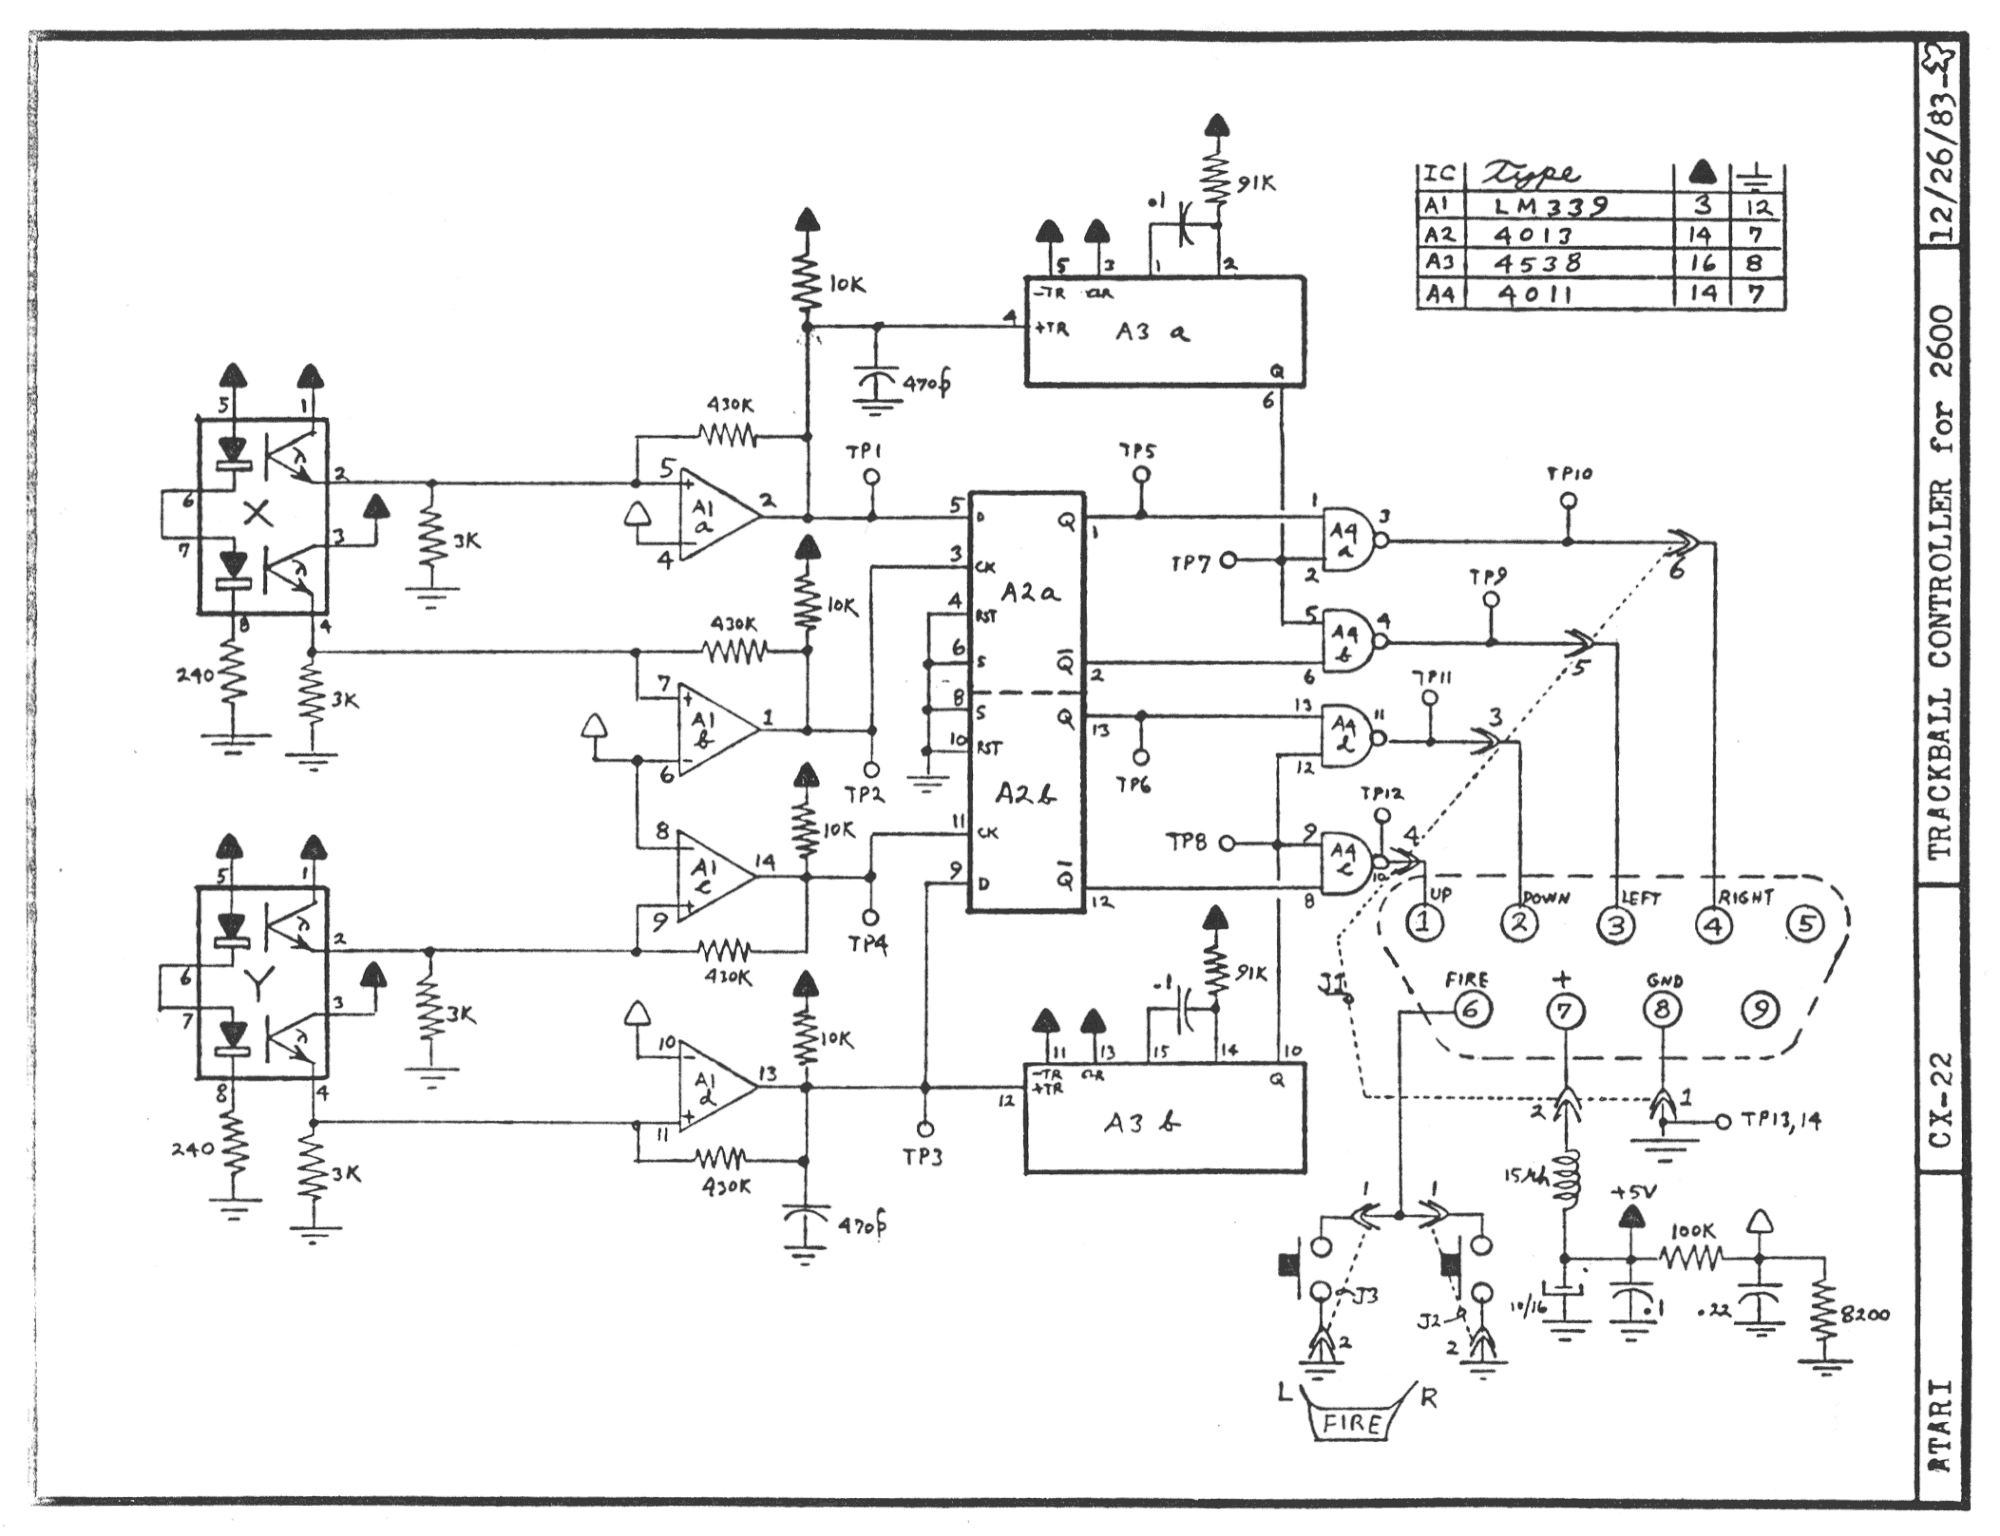 Atari 2600 Joystick Wiring Diagram Auto Electrical Related With